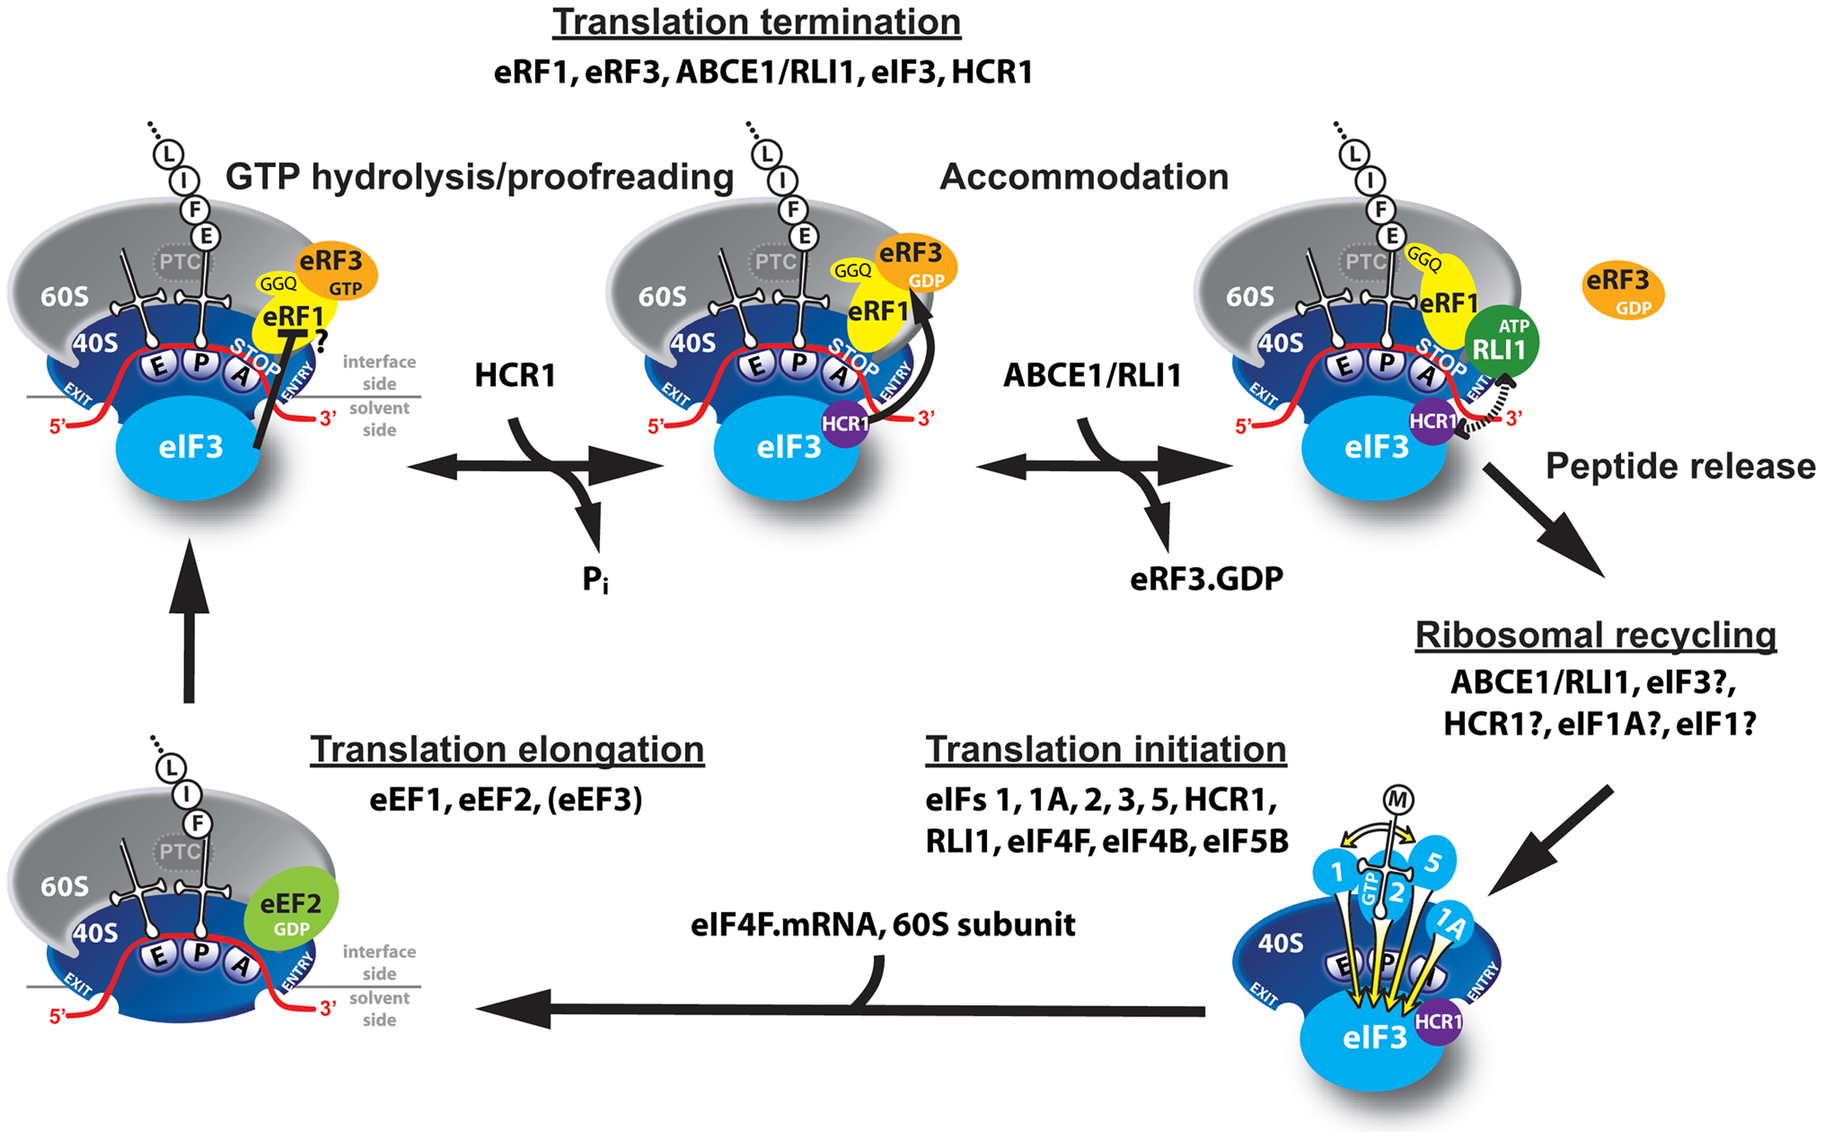 Model of eIF3 and HCR1 involvement in yeast translation termination.